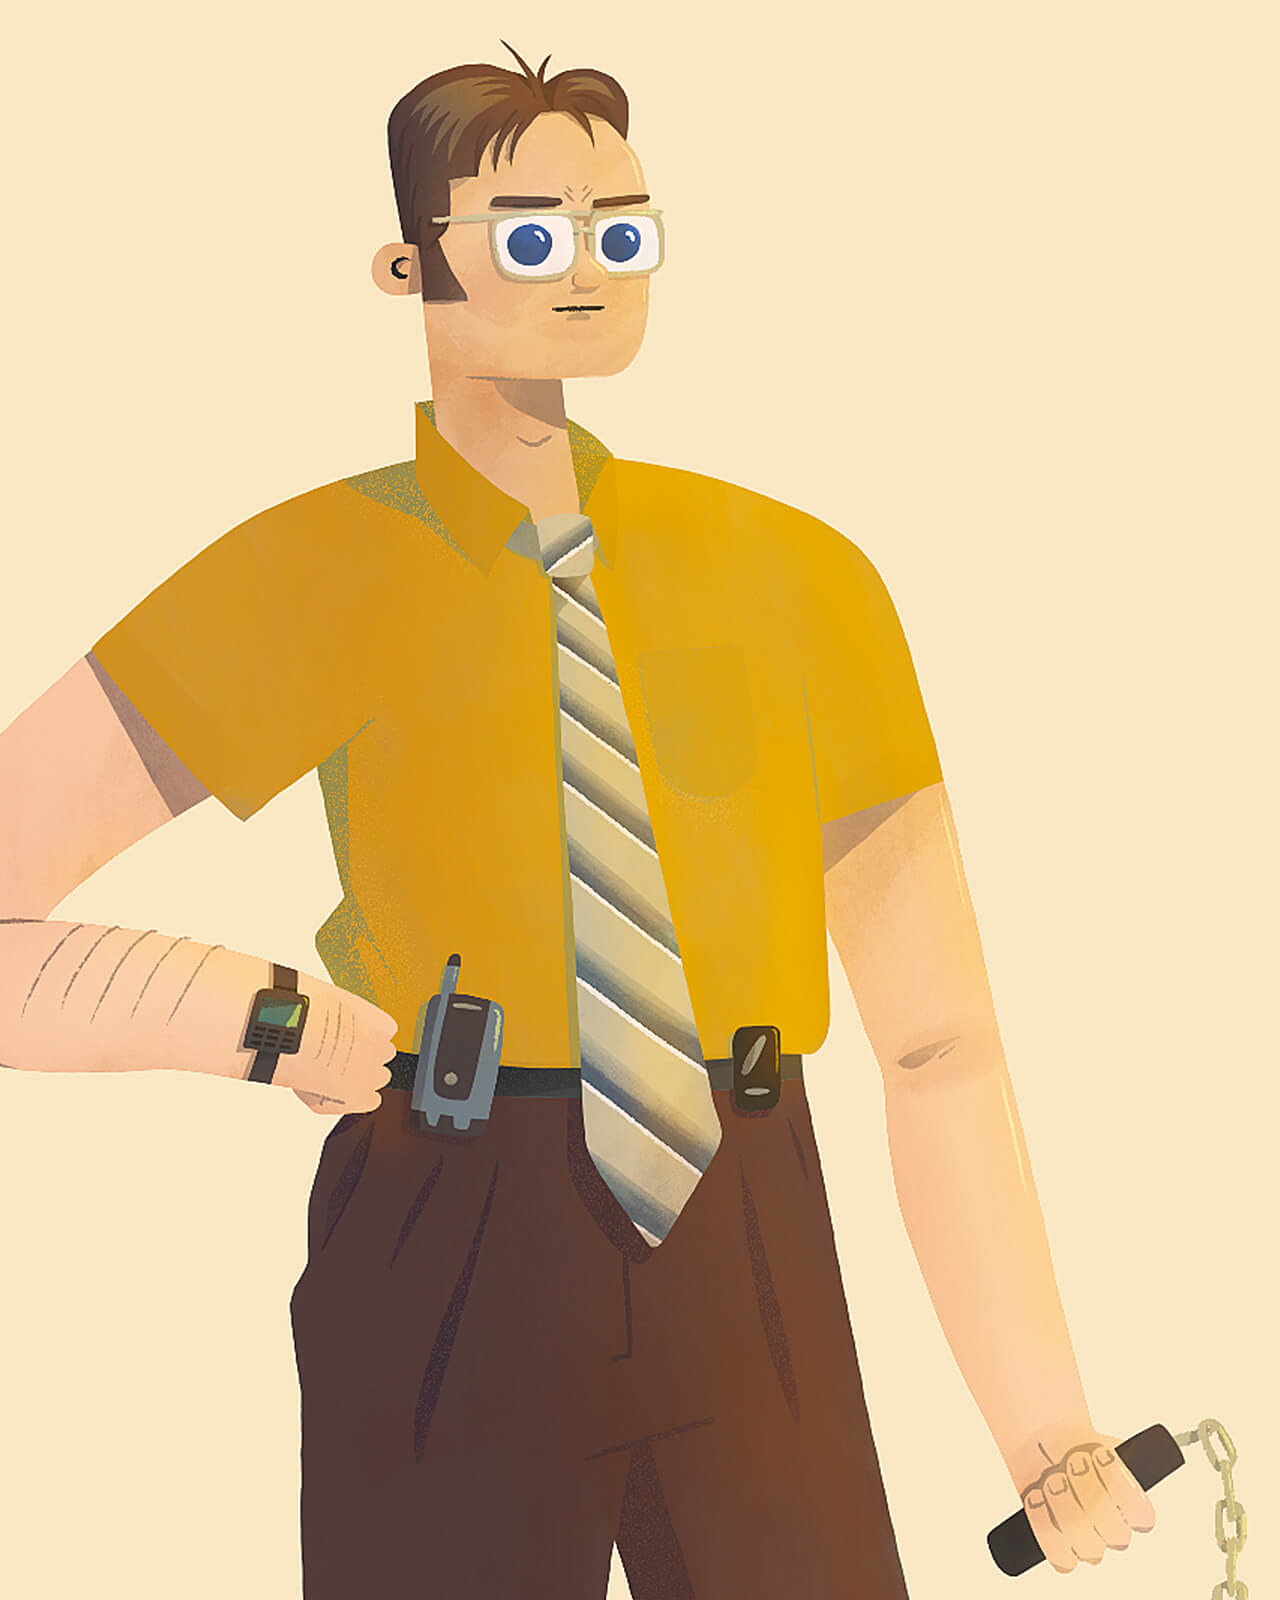 Illustrated portrait of Dwight Schrute